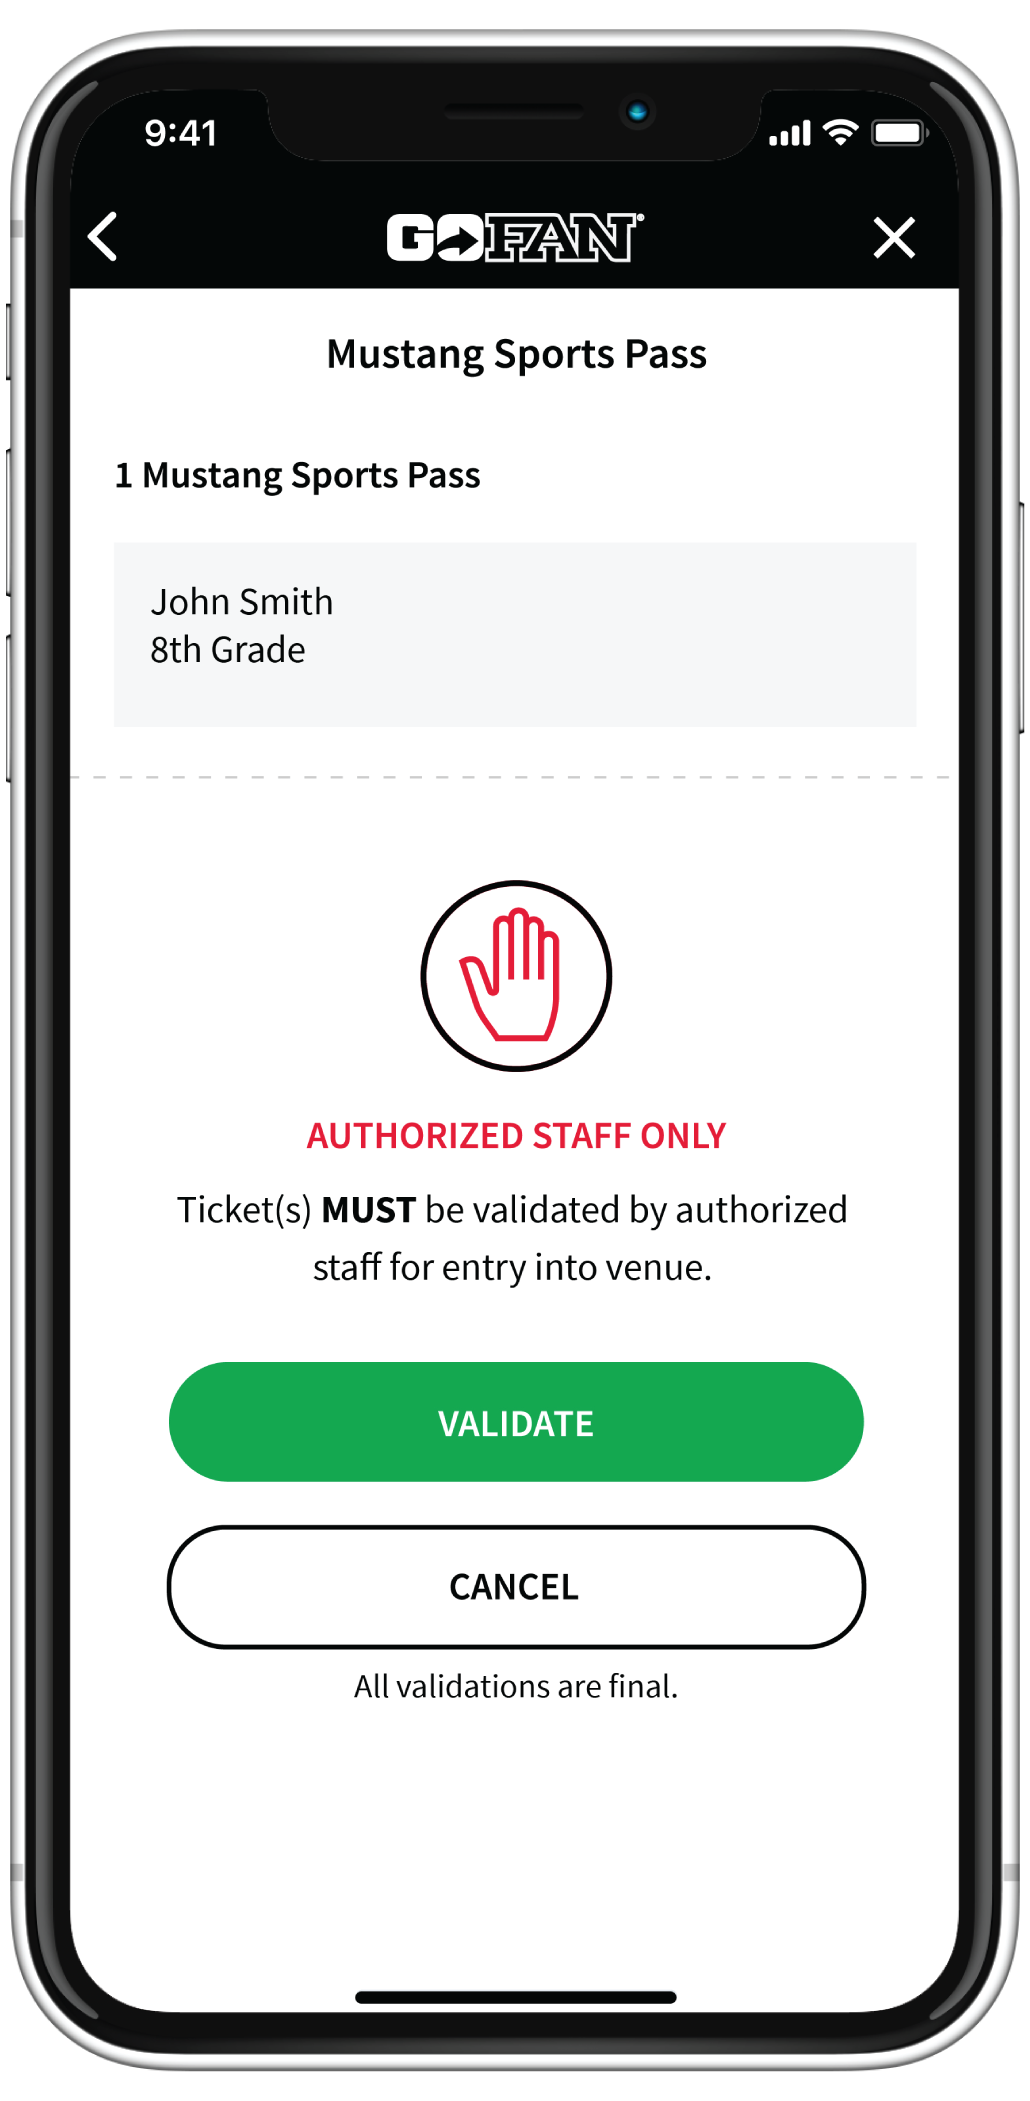 HuddleTickets2019_Assets_Mobile Pass 2.png